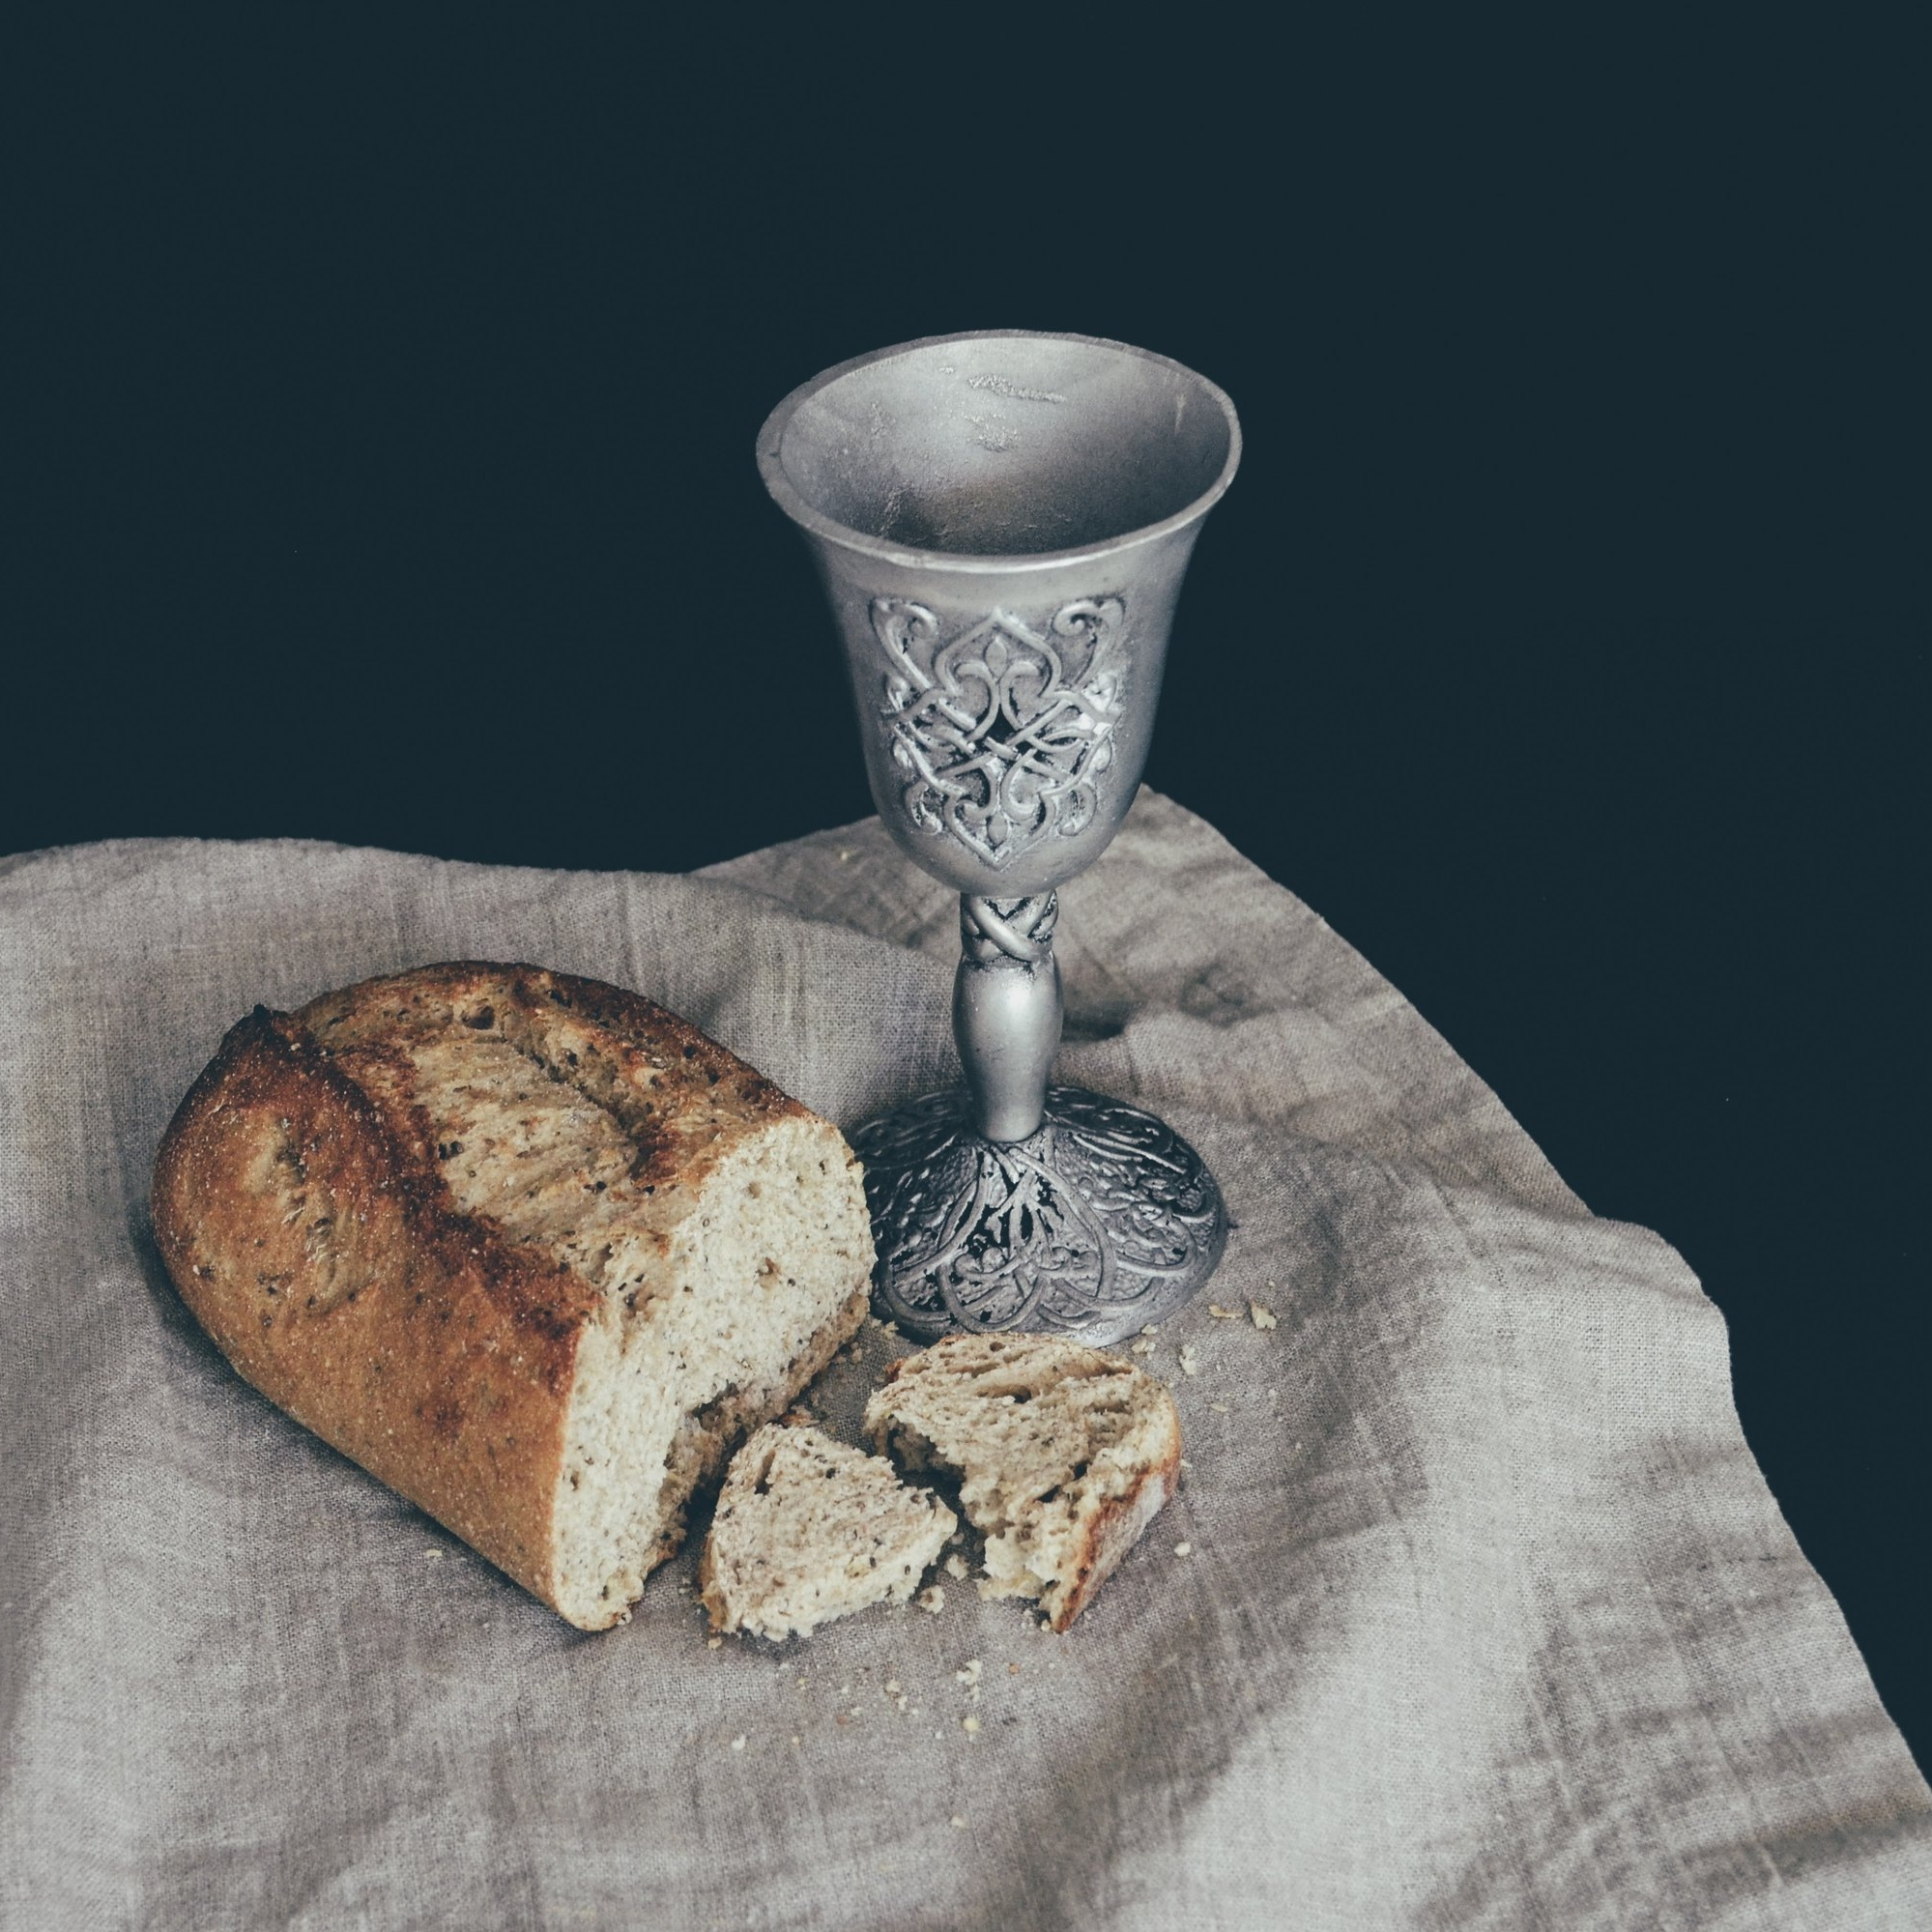 - The Lords' Supper.